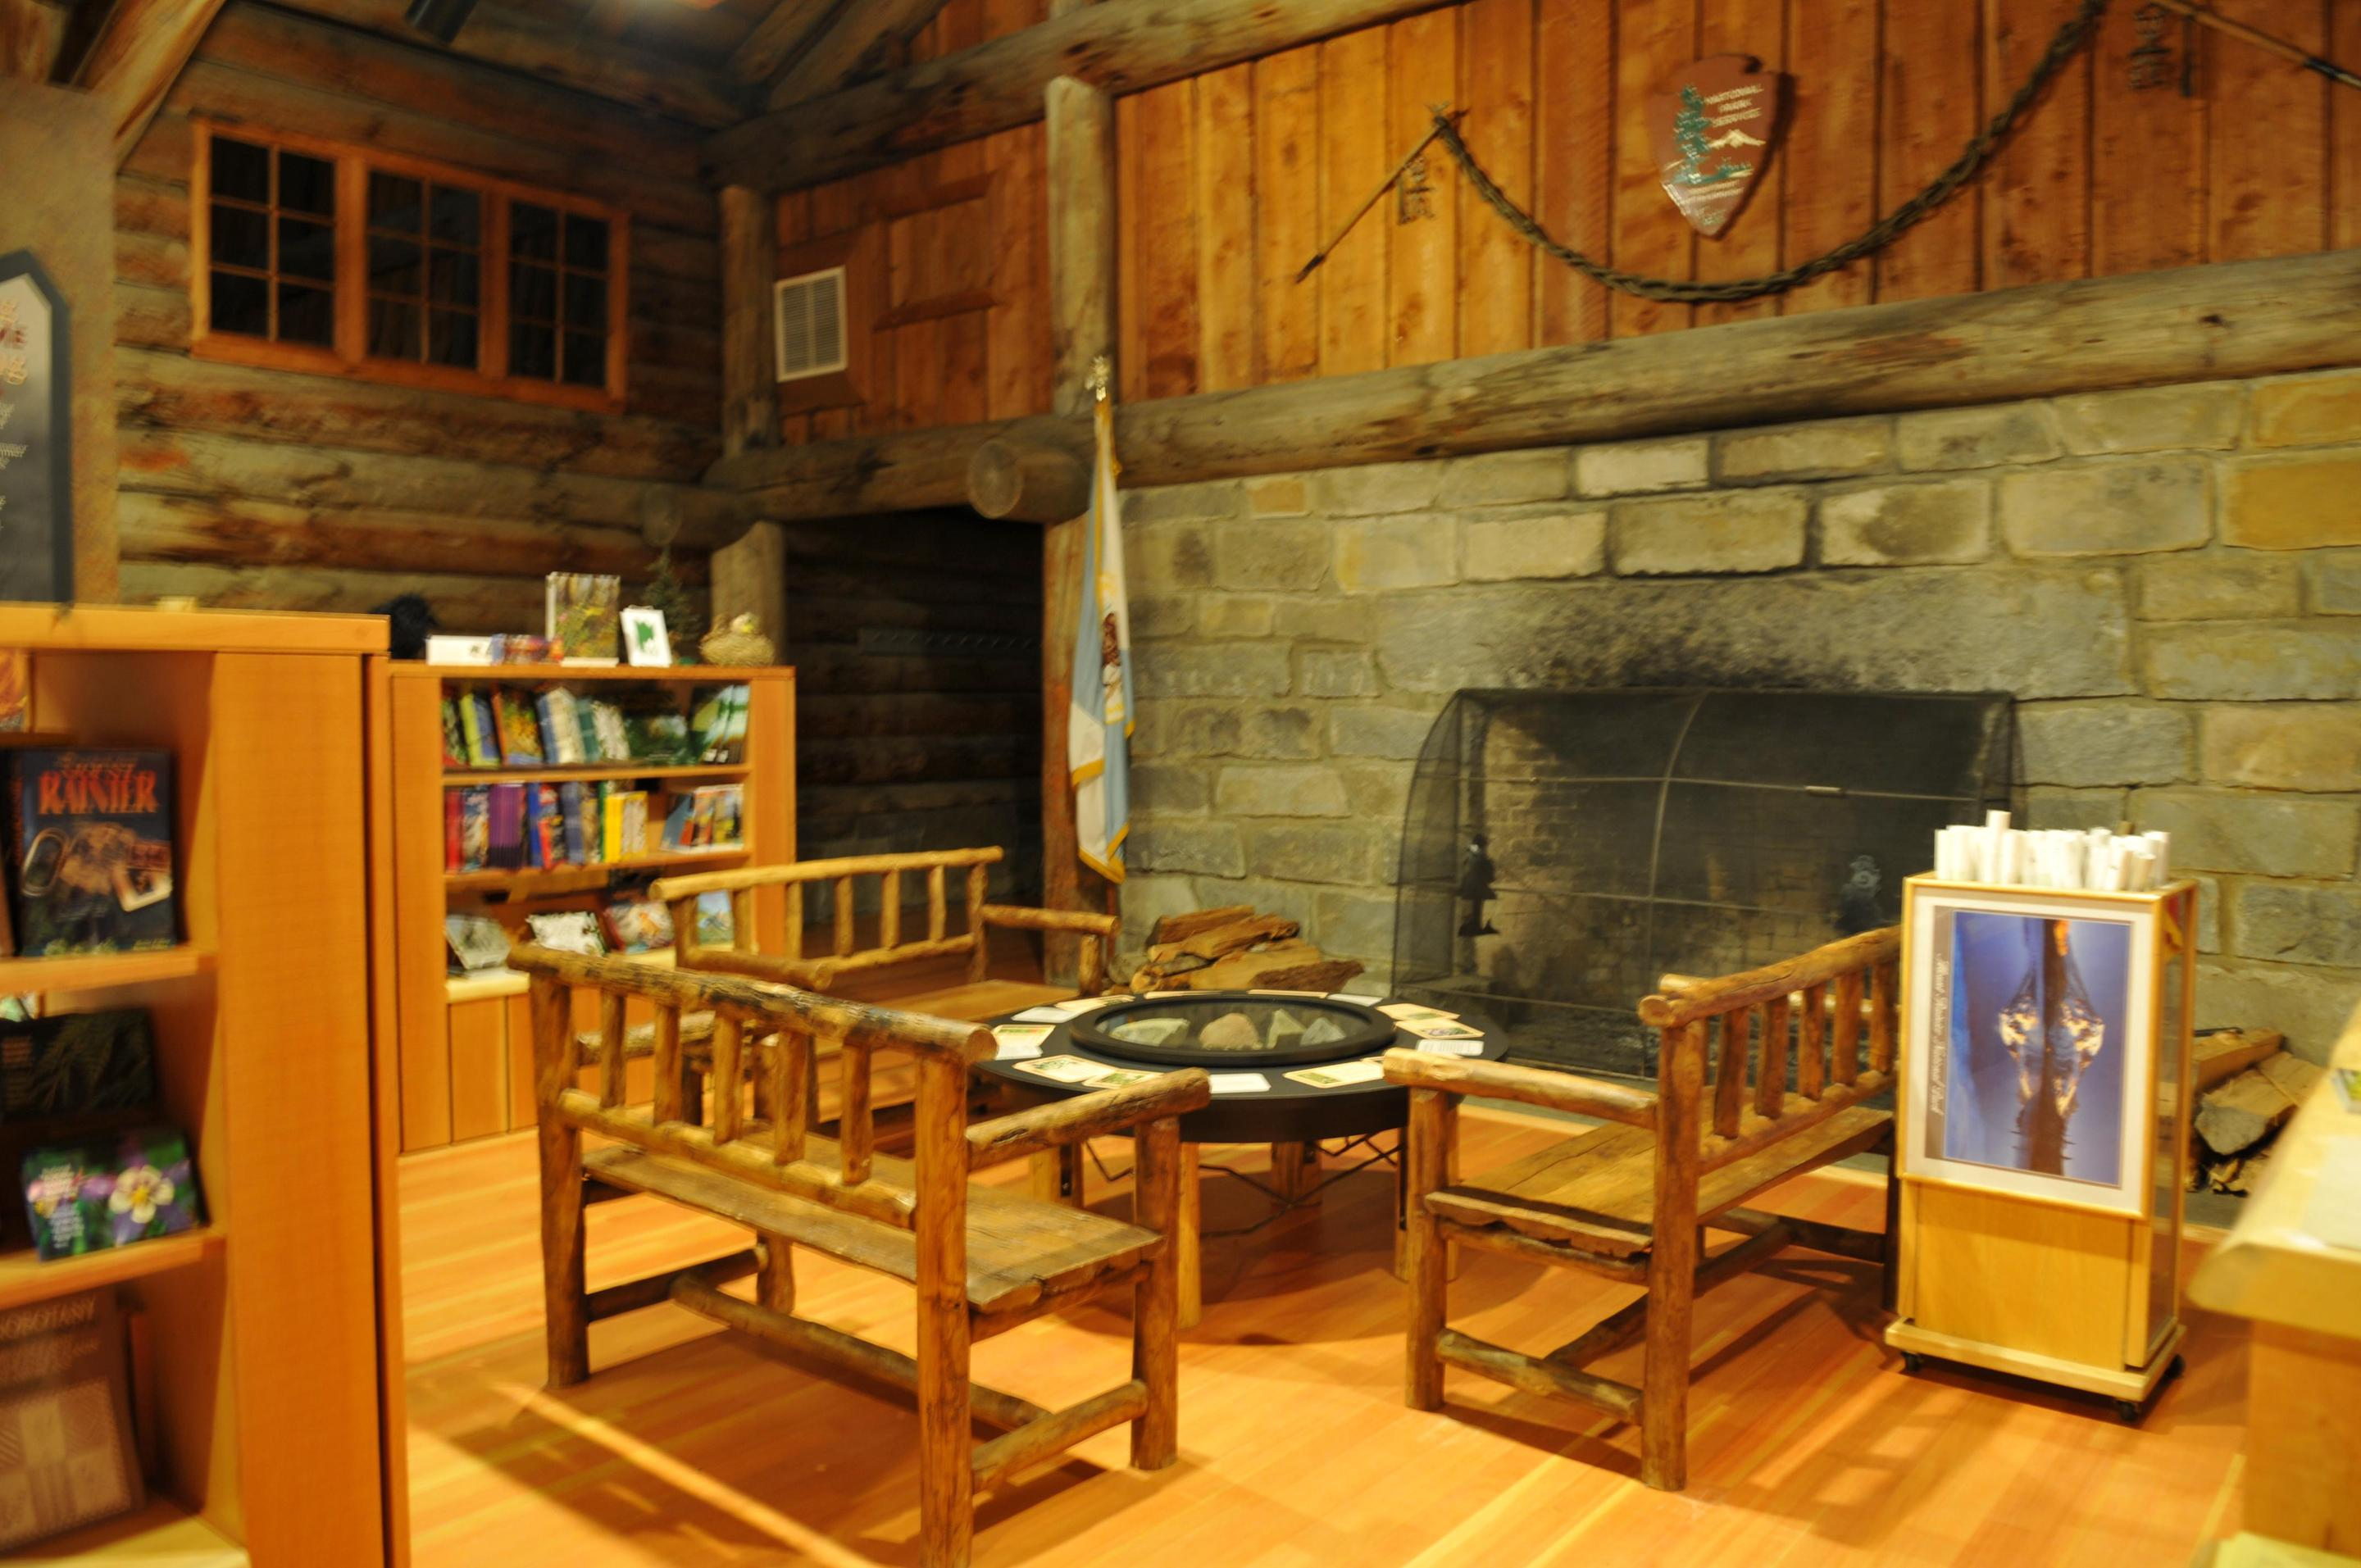 Sunrise Visitor Center FireplaceEnjoy the rustic building and massive fireplace while browsing the bookstore or relaxing on a bench.